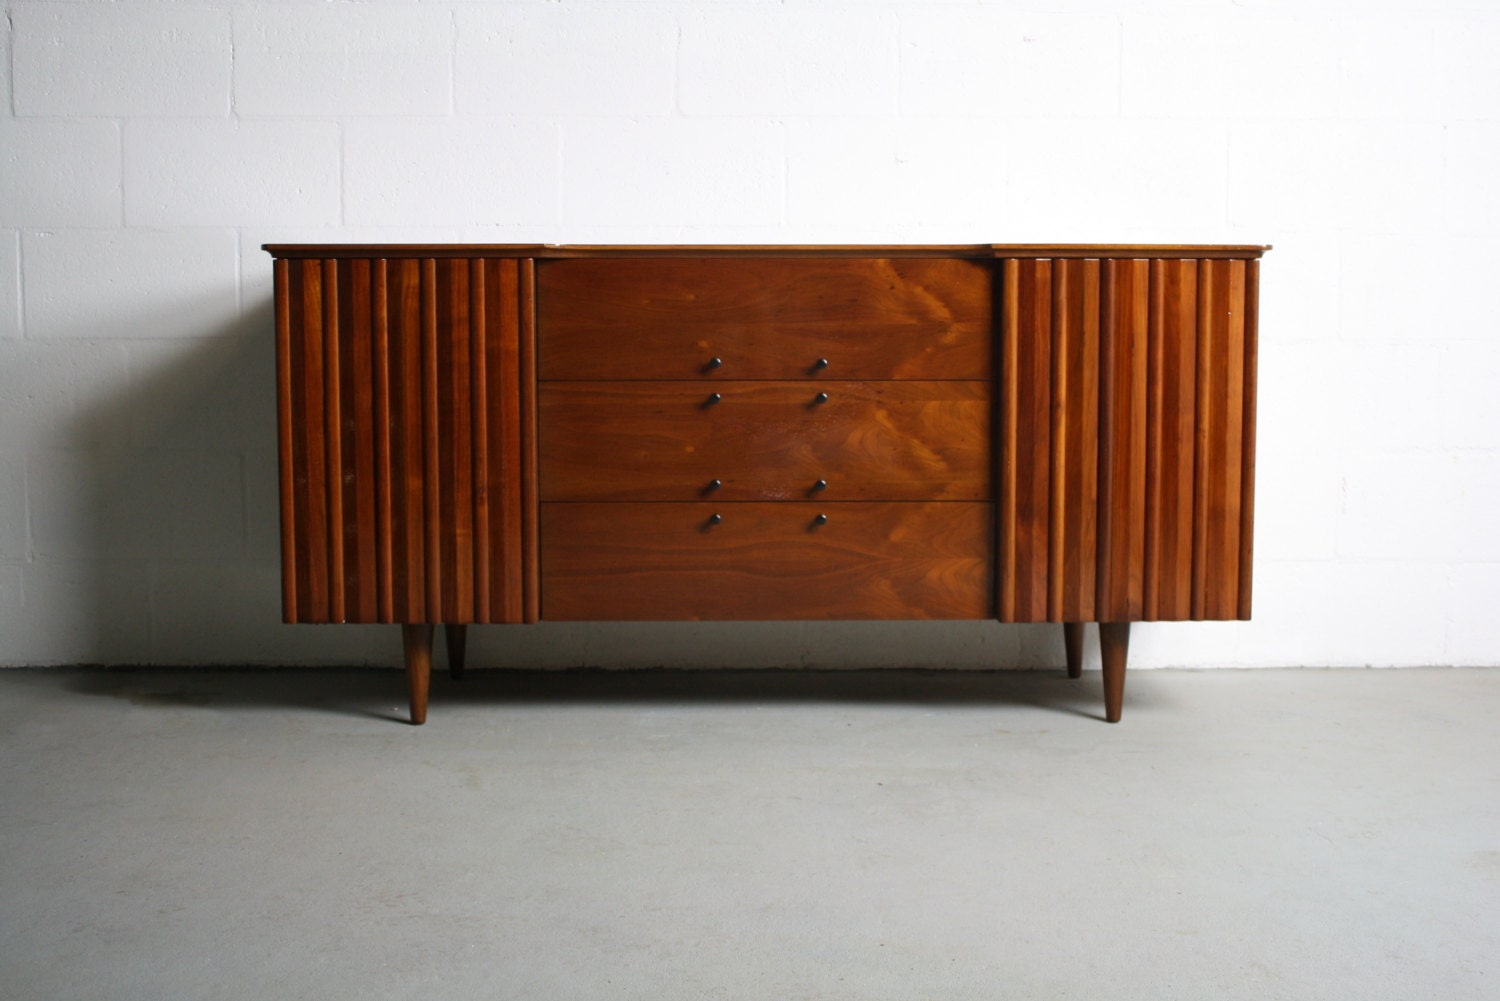 Sold To Haley Mid Century Modern Credenza By United Furniture